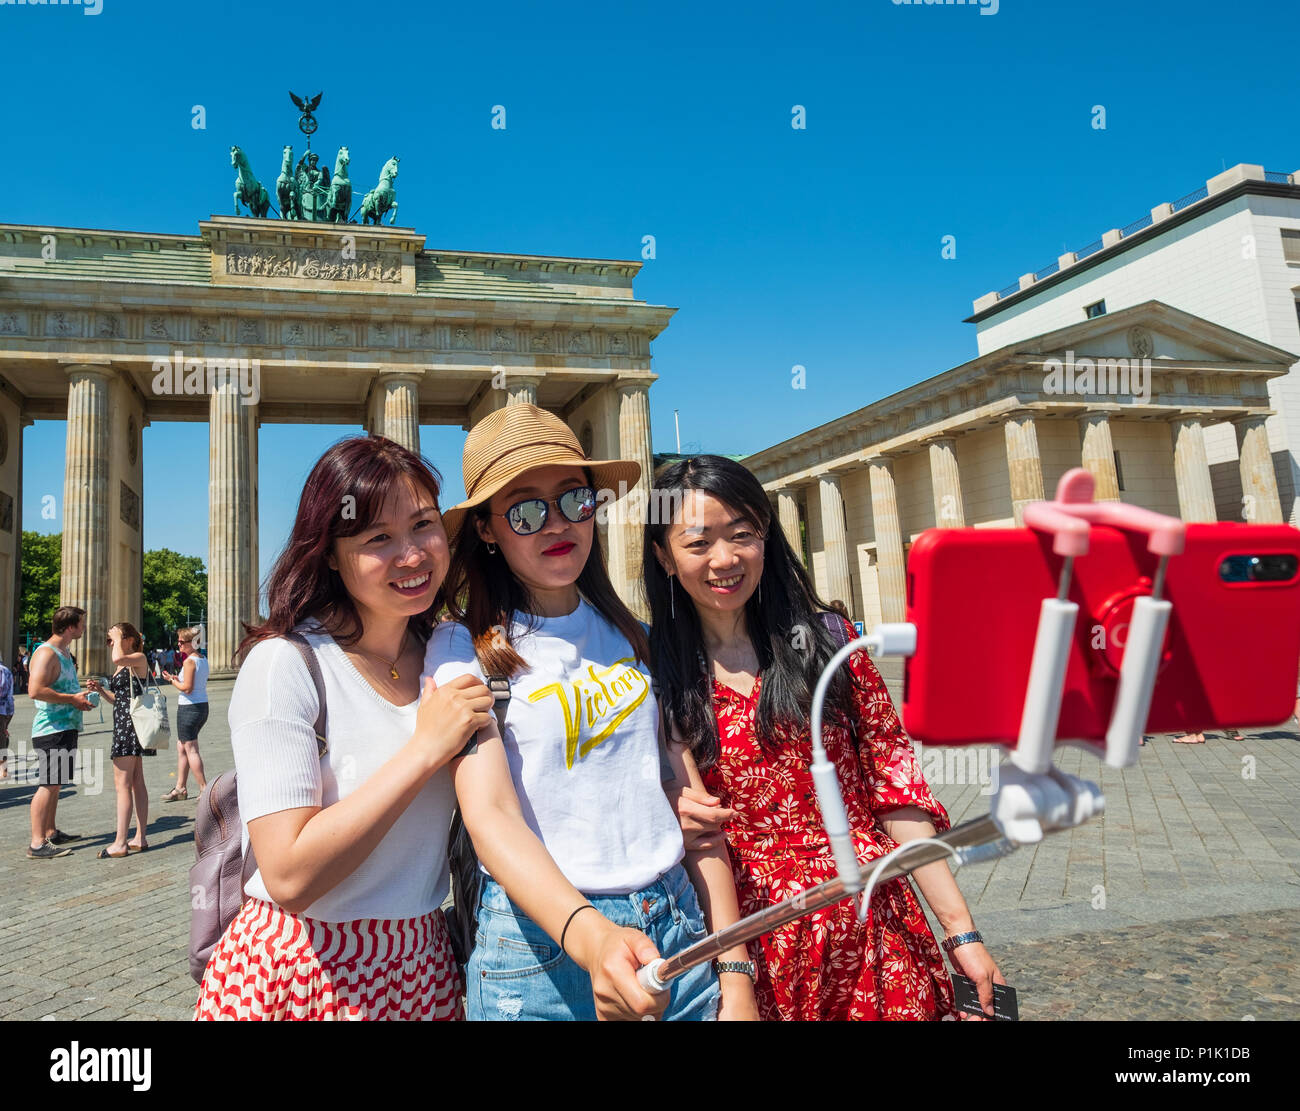 Female Chinese tourists posing with selfie stick in front of Brandenburg Gate in Berlin, Germany Stock Photo